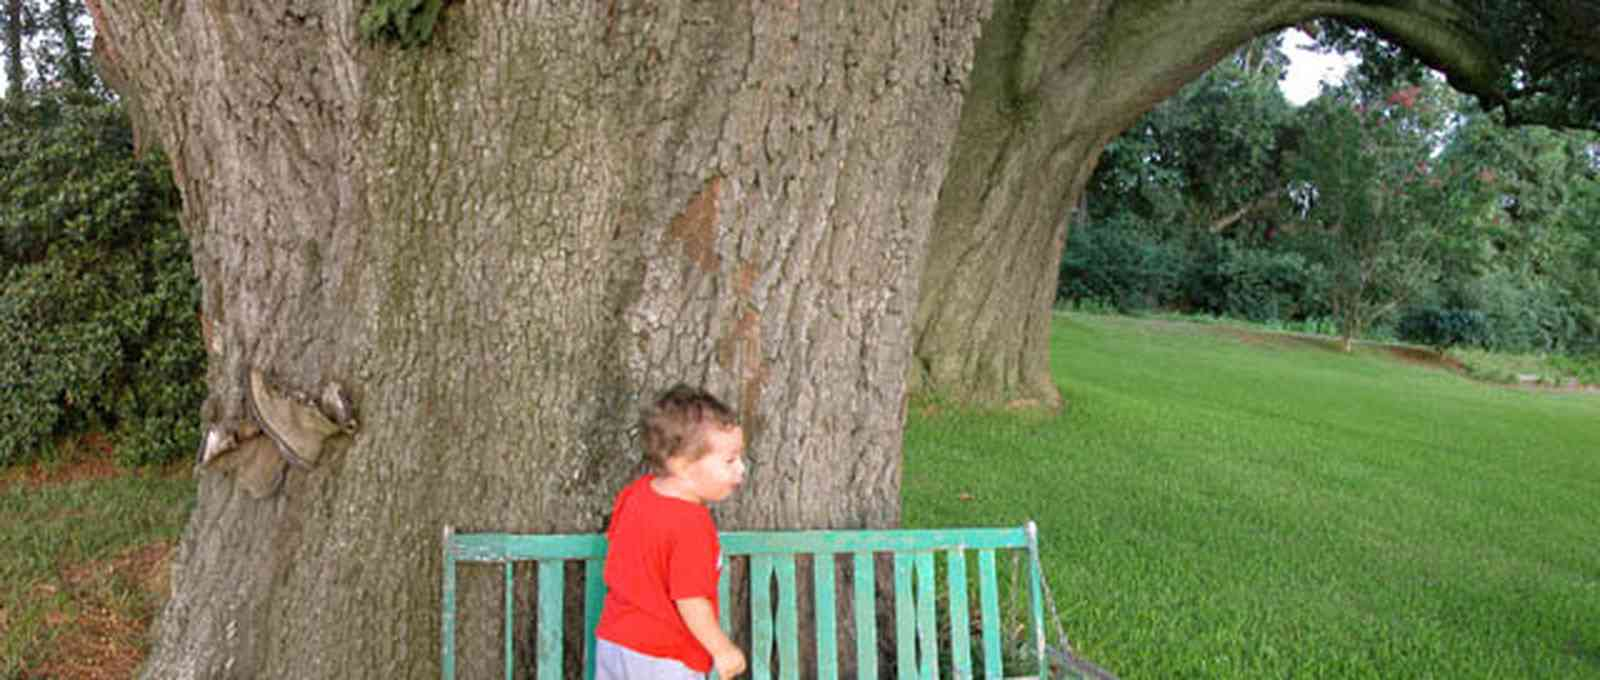 Pace:-Three-Oaks-Farm_05.jpg:  specimin oak tree, giant oak tree, bench, child, john michael roush, farm, farmland, peanut farm